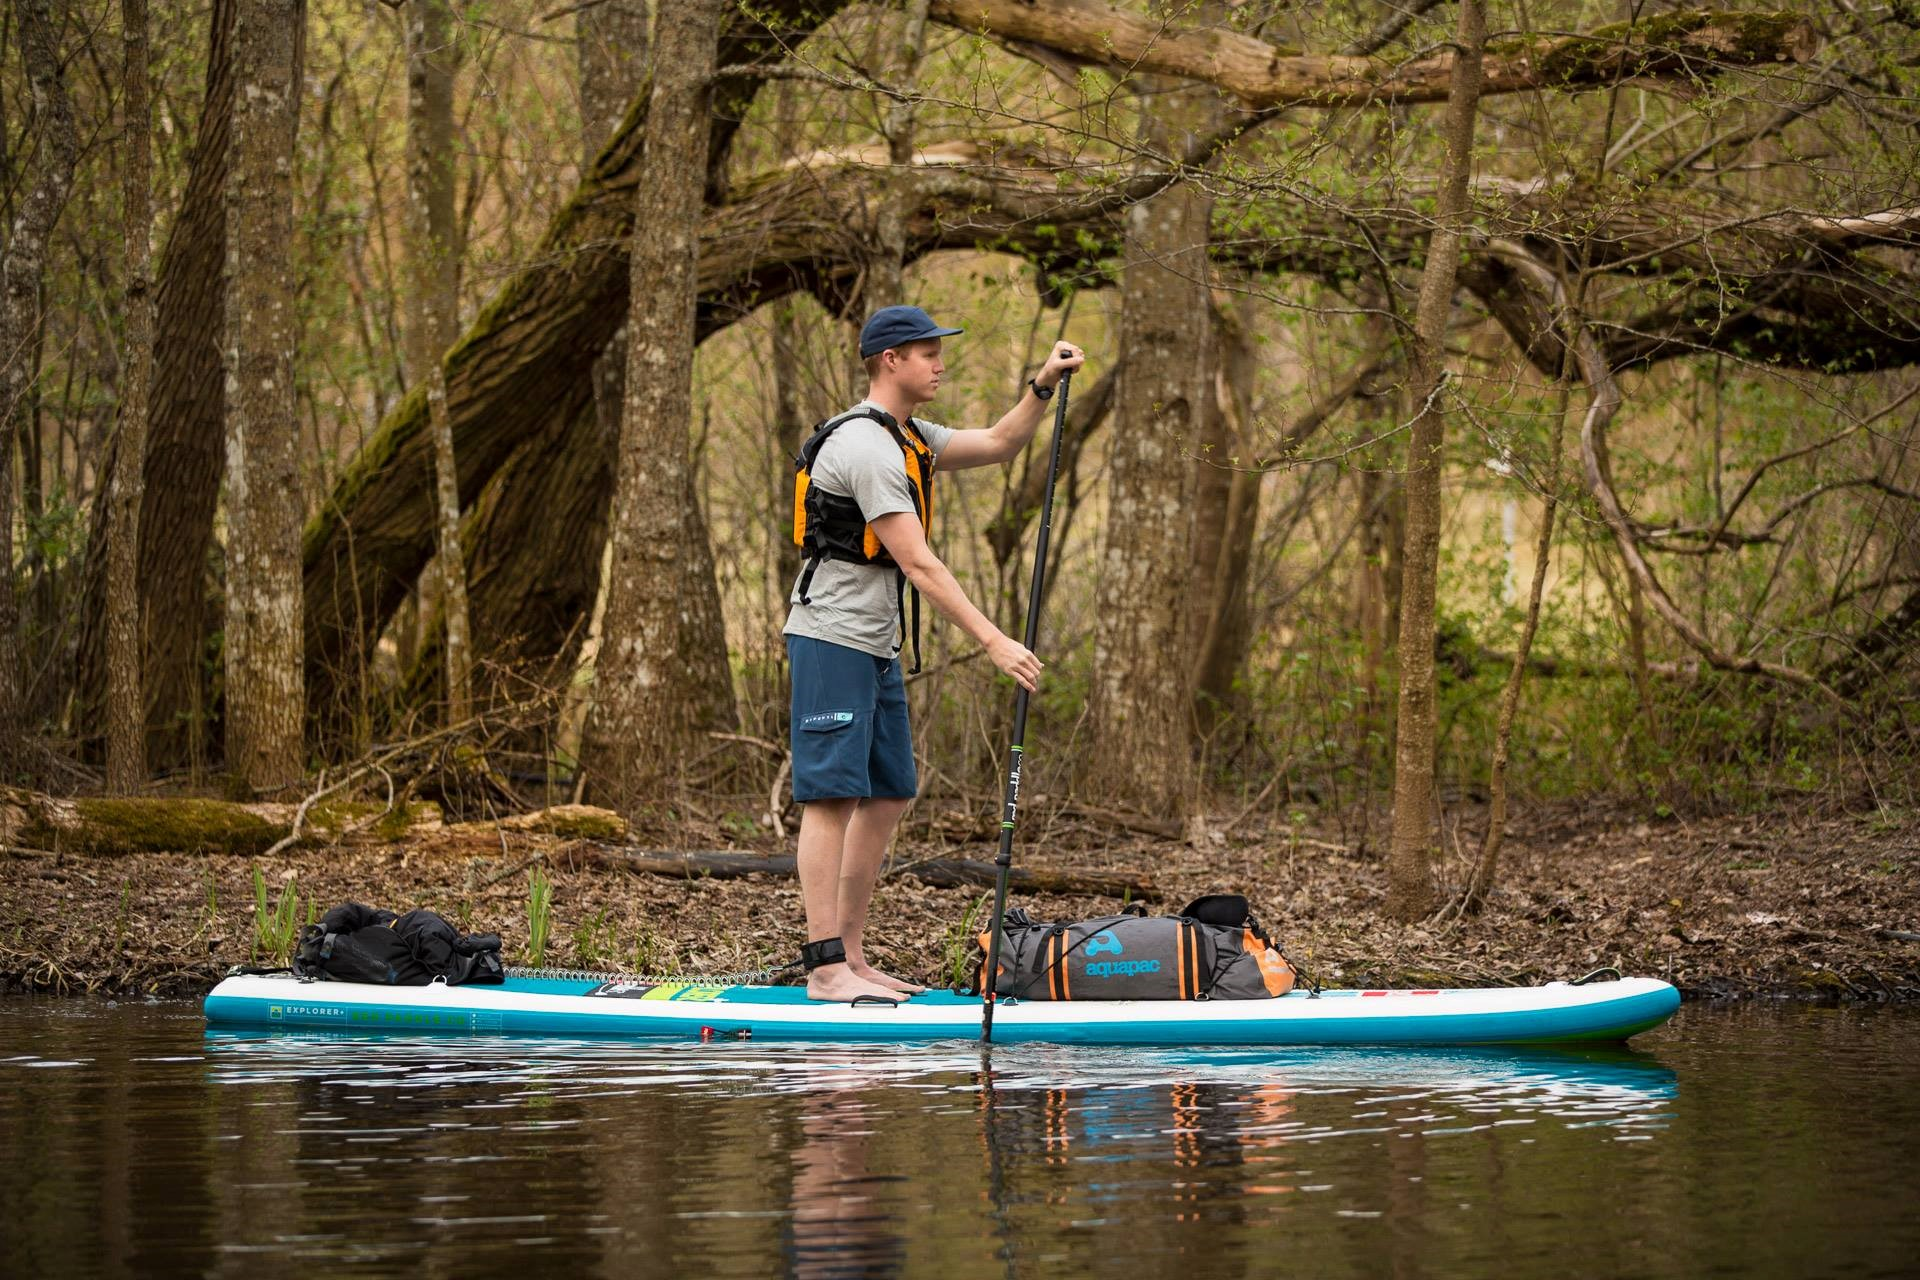 Marcus Aspsjö training before his American Stand Up Paddle Board Adventure